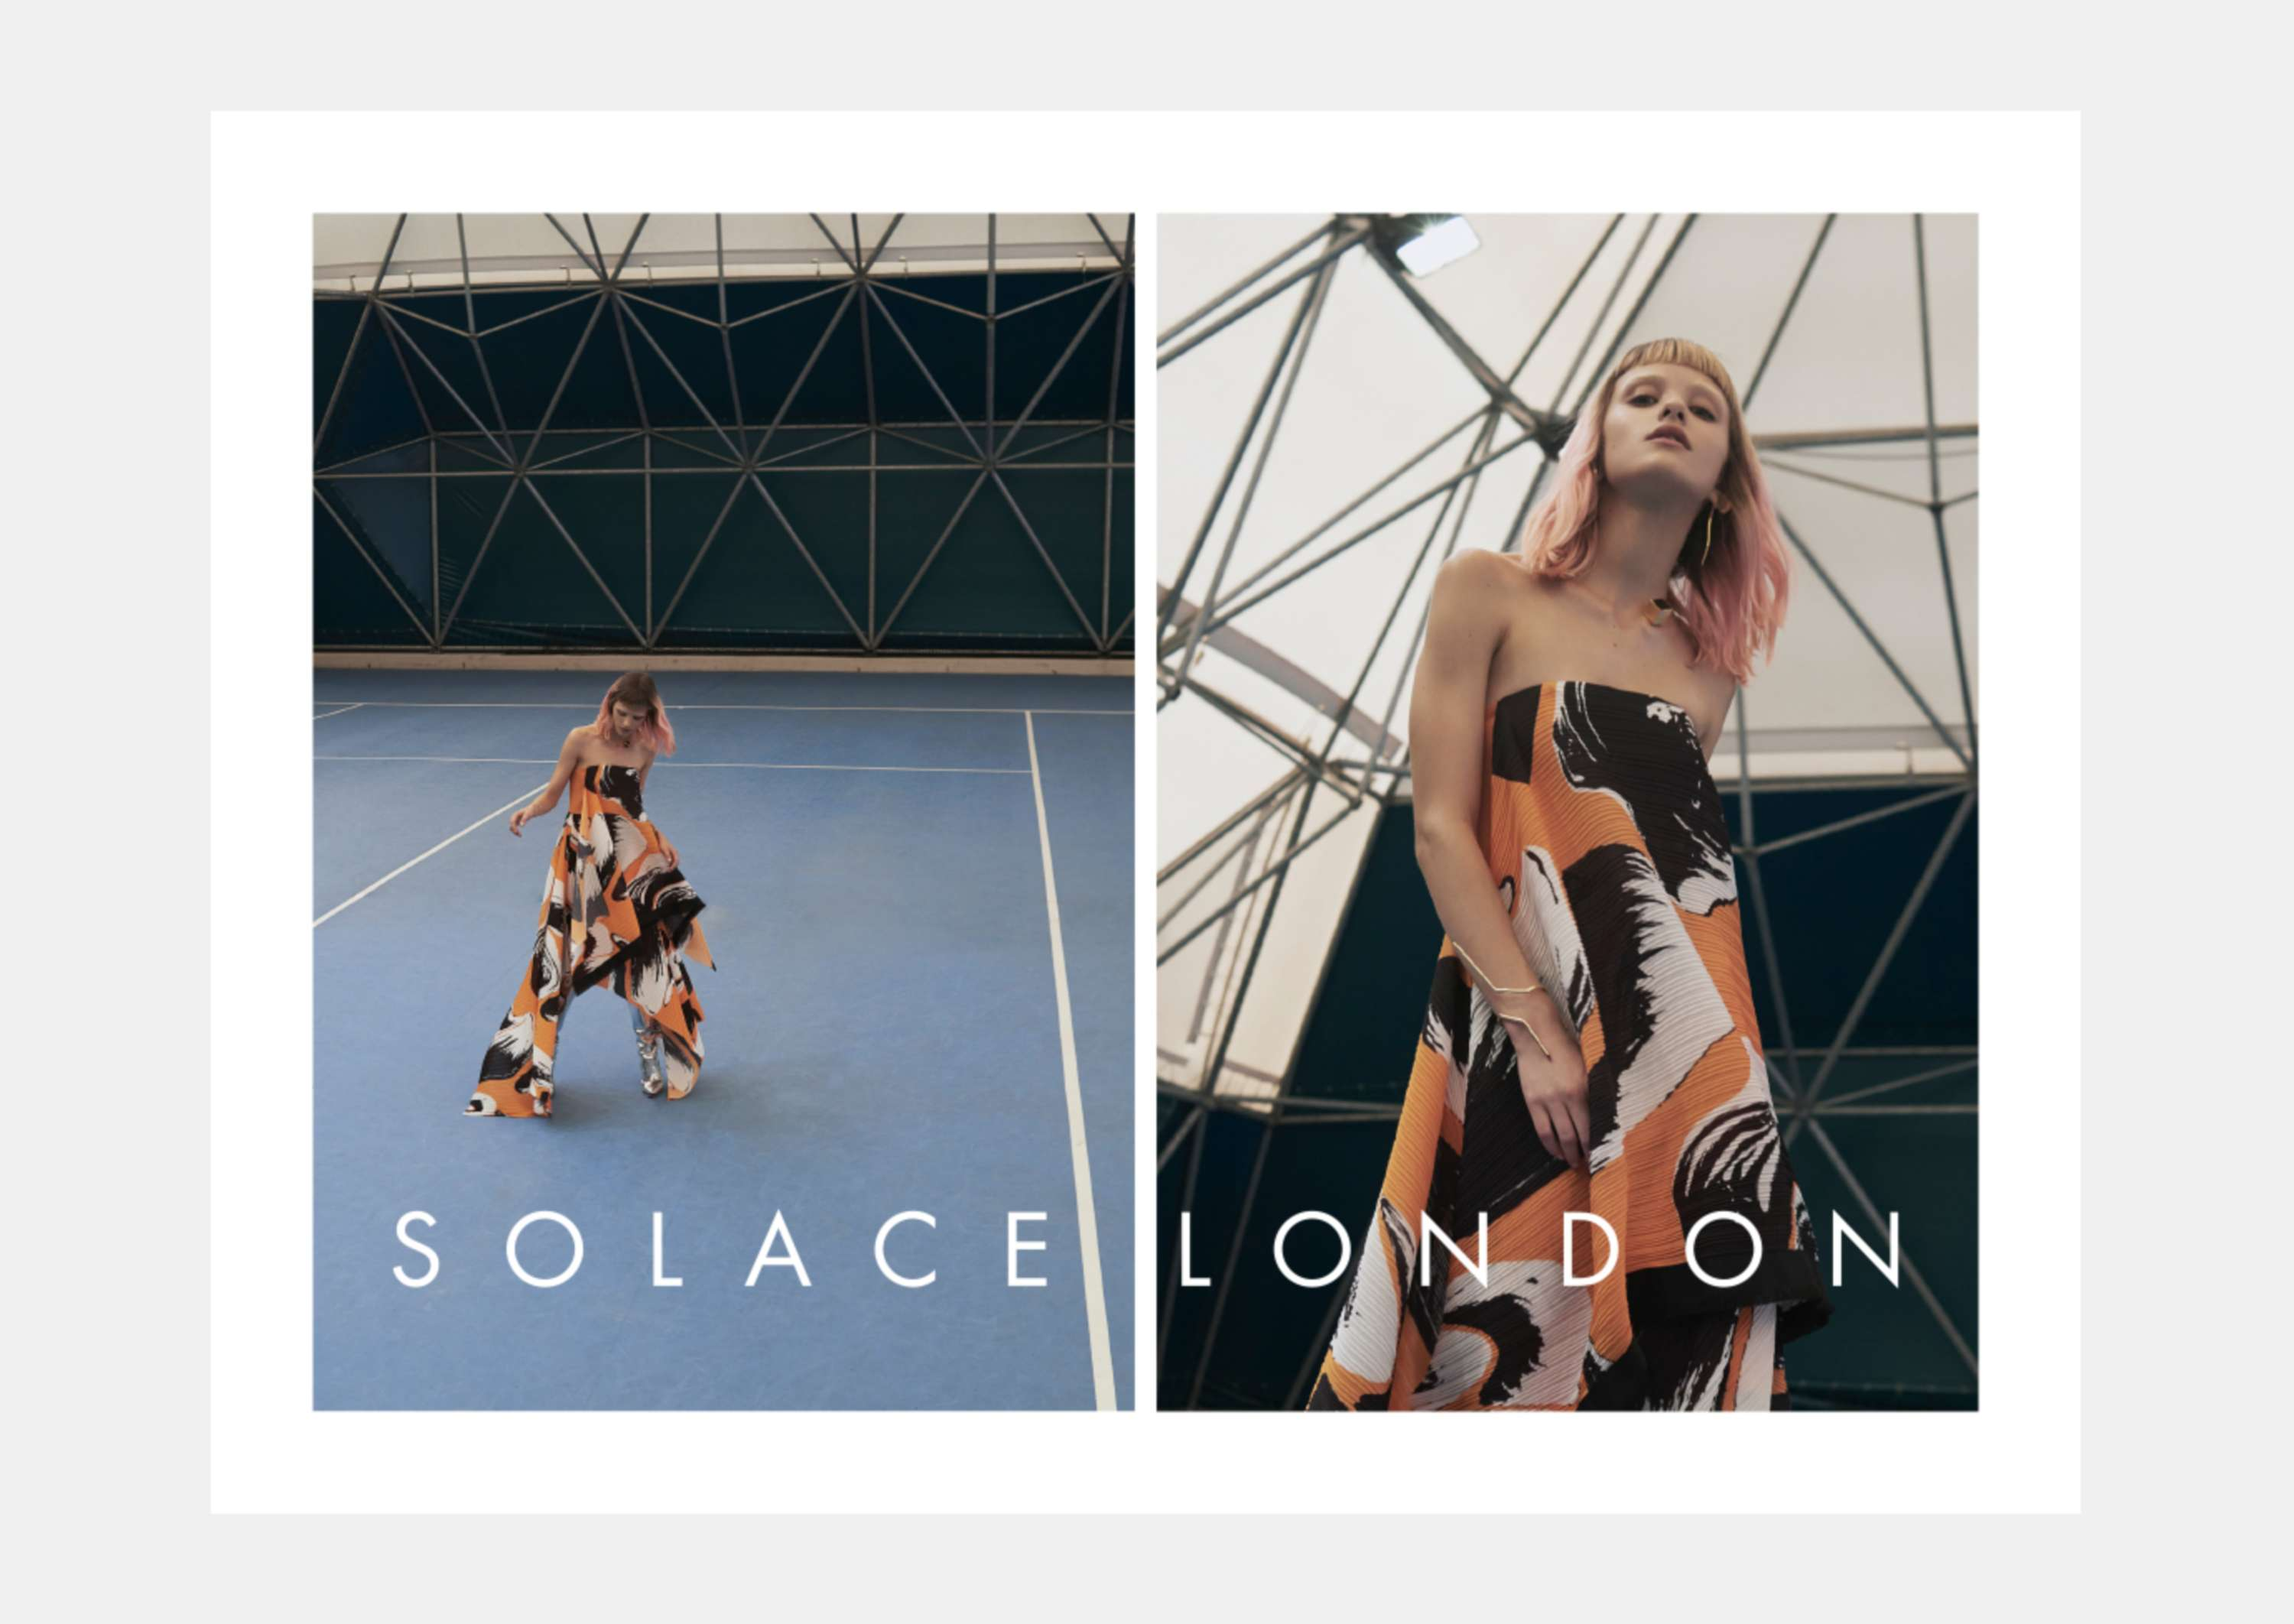 solace london collection the dots their collections of statement dresses and separates define modern graphic elegance a focus on construction craftsmanship and attention to detail